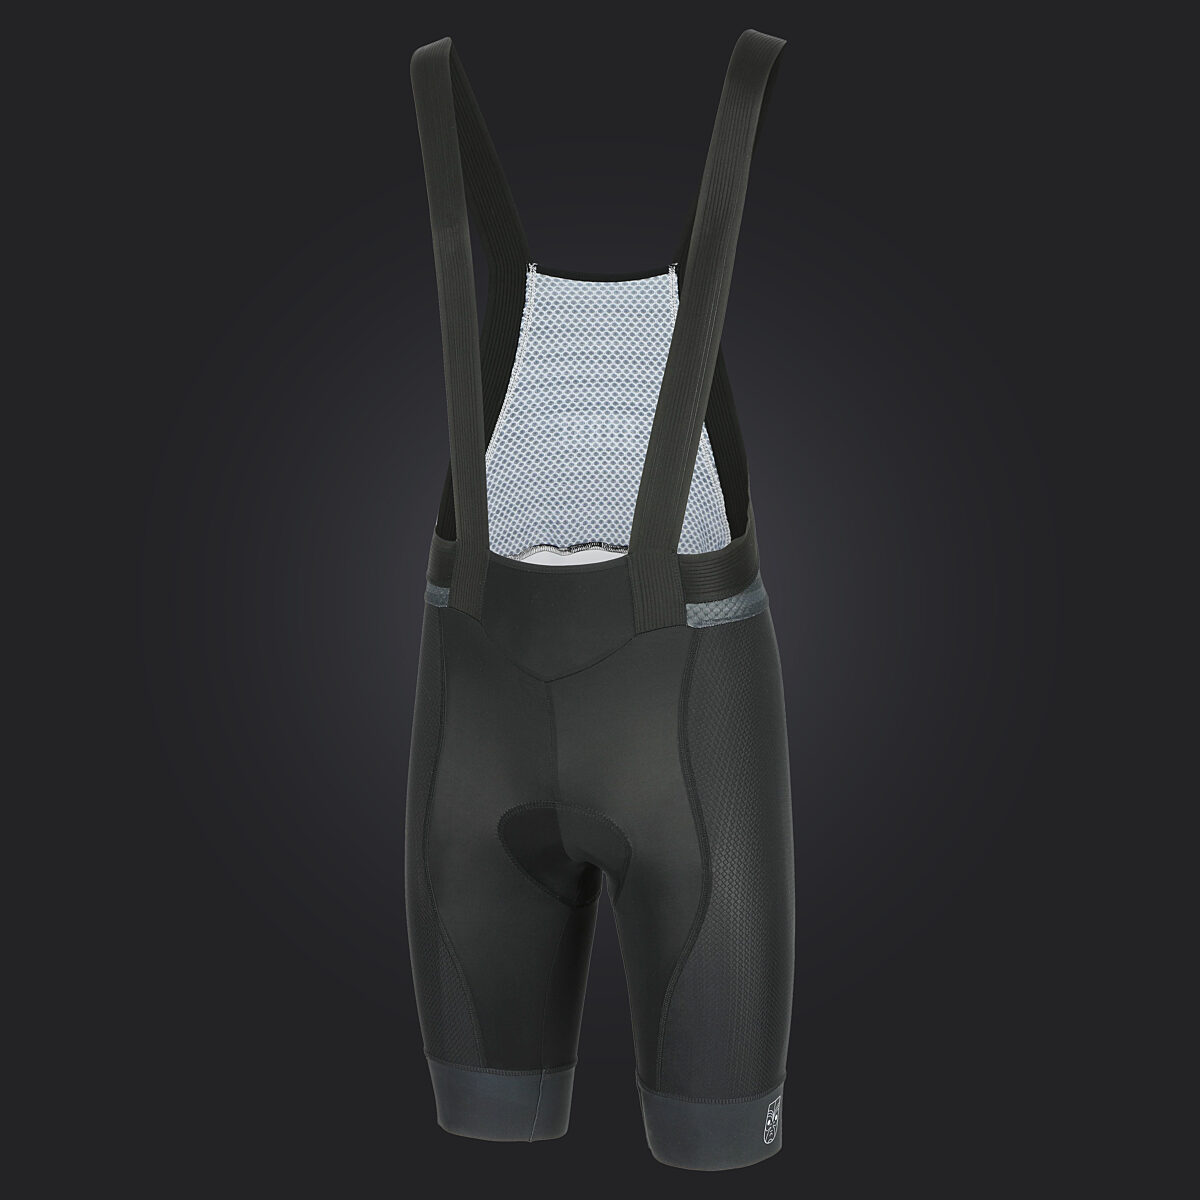 Bodhi cycling custom black eye bib short